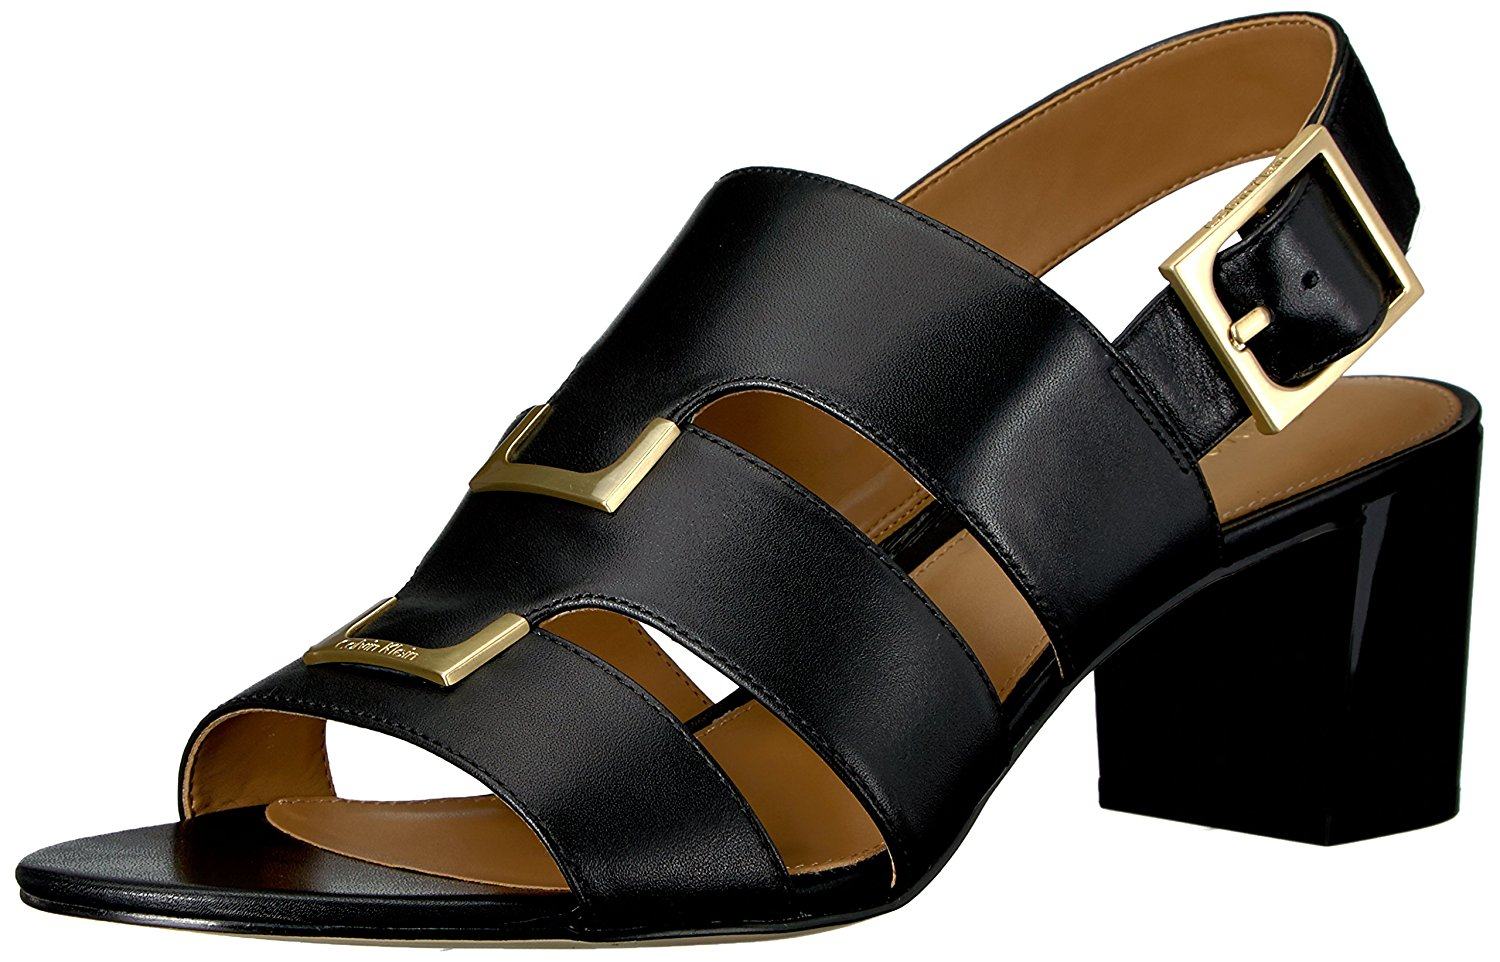 0b5d3fe213cc Calvin Klein Womens Neda Leather Open Toe Casual Strappy Sandals